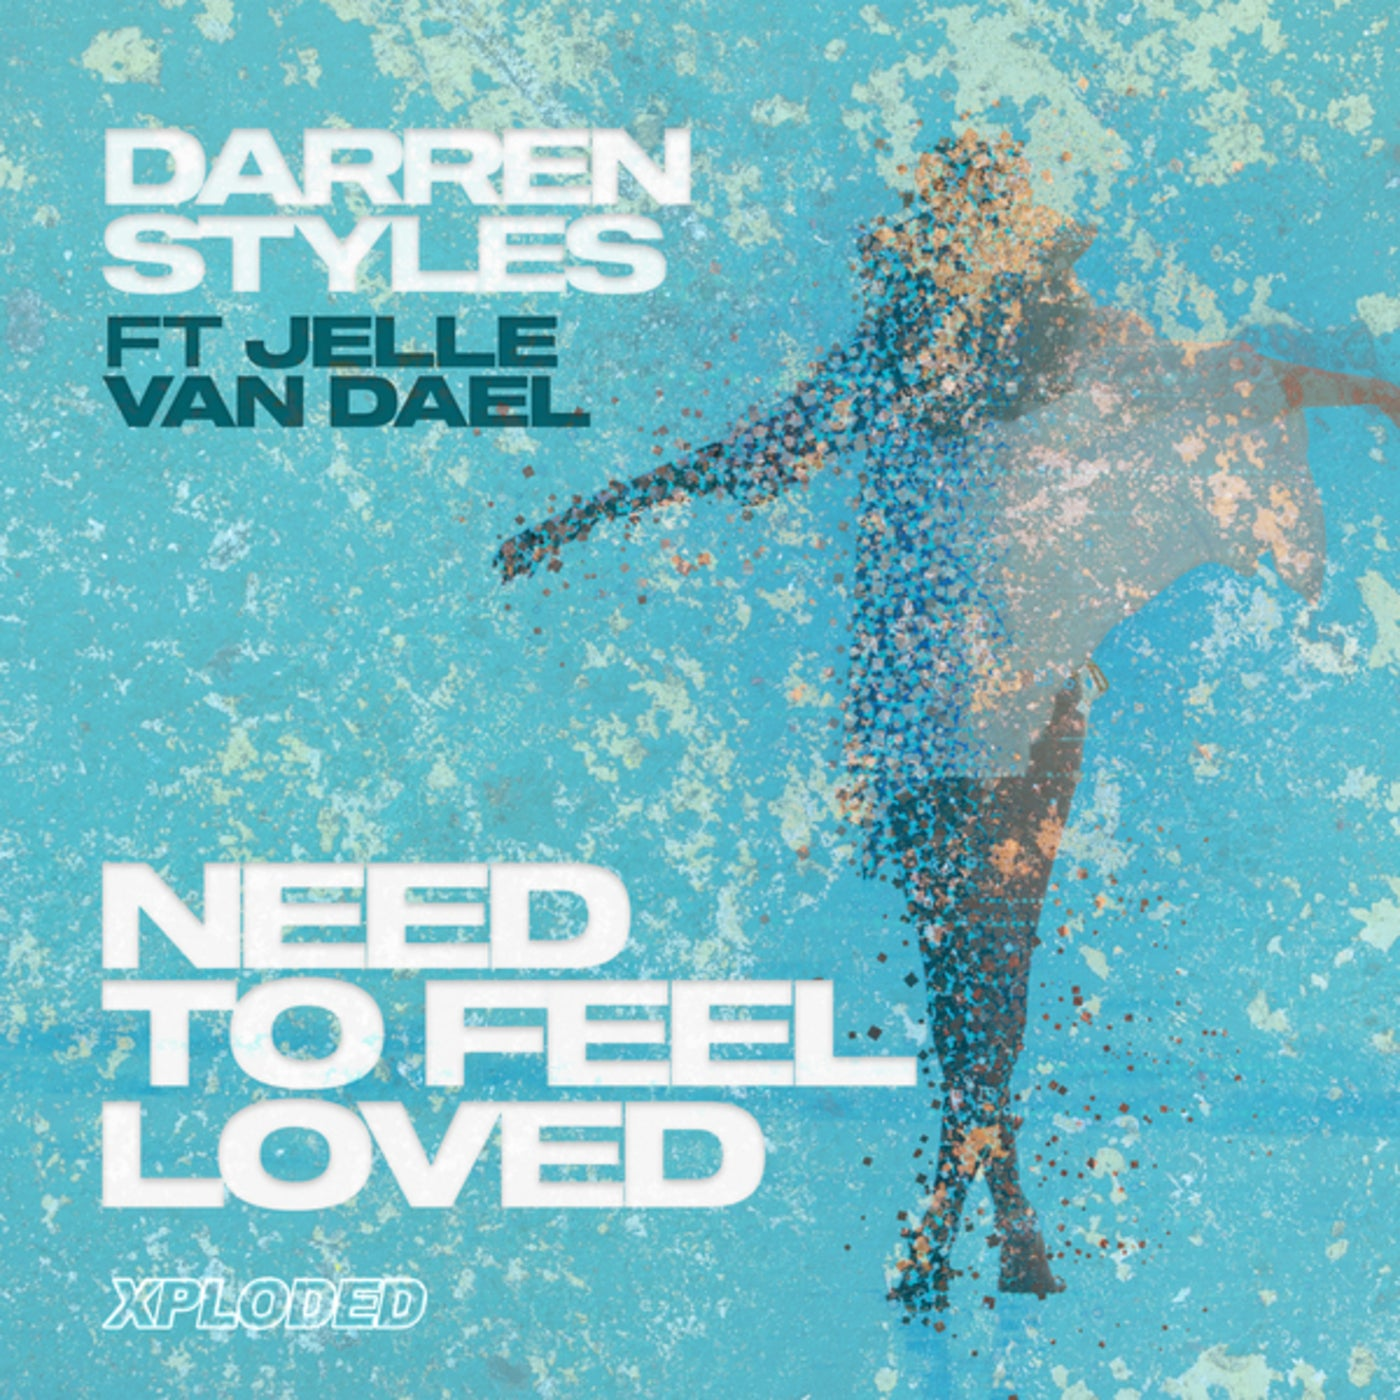 Need To Feel Loved (Original Mix)